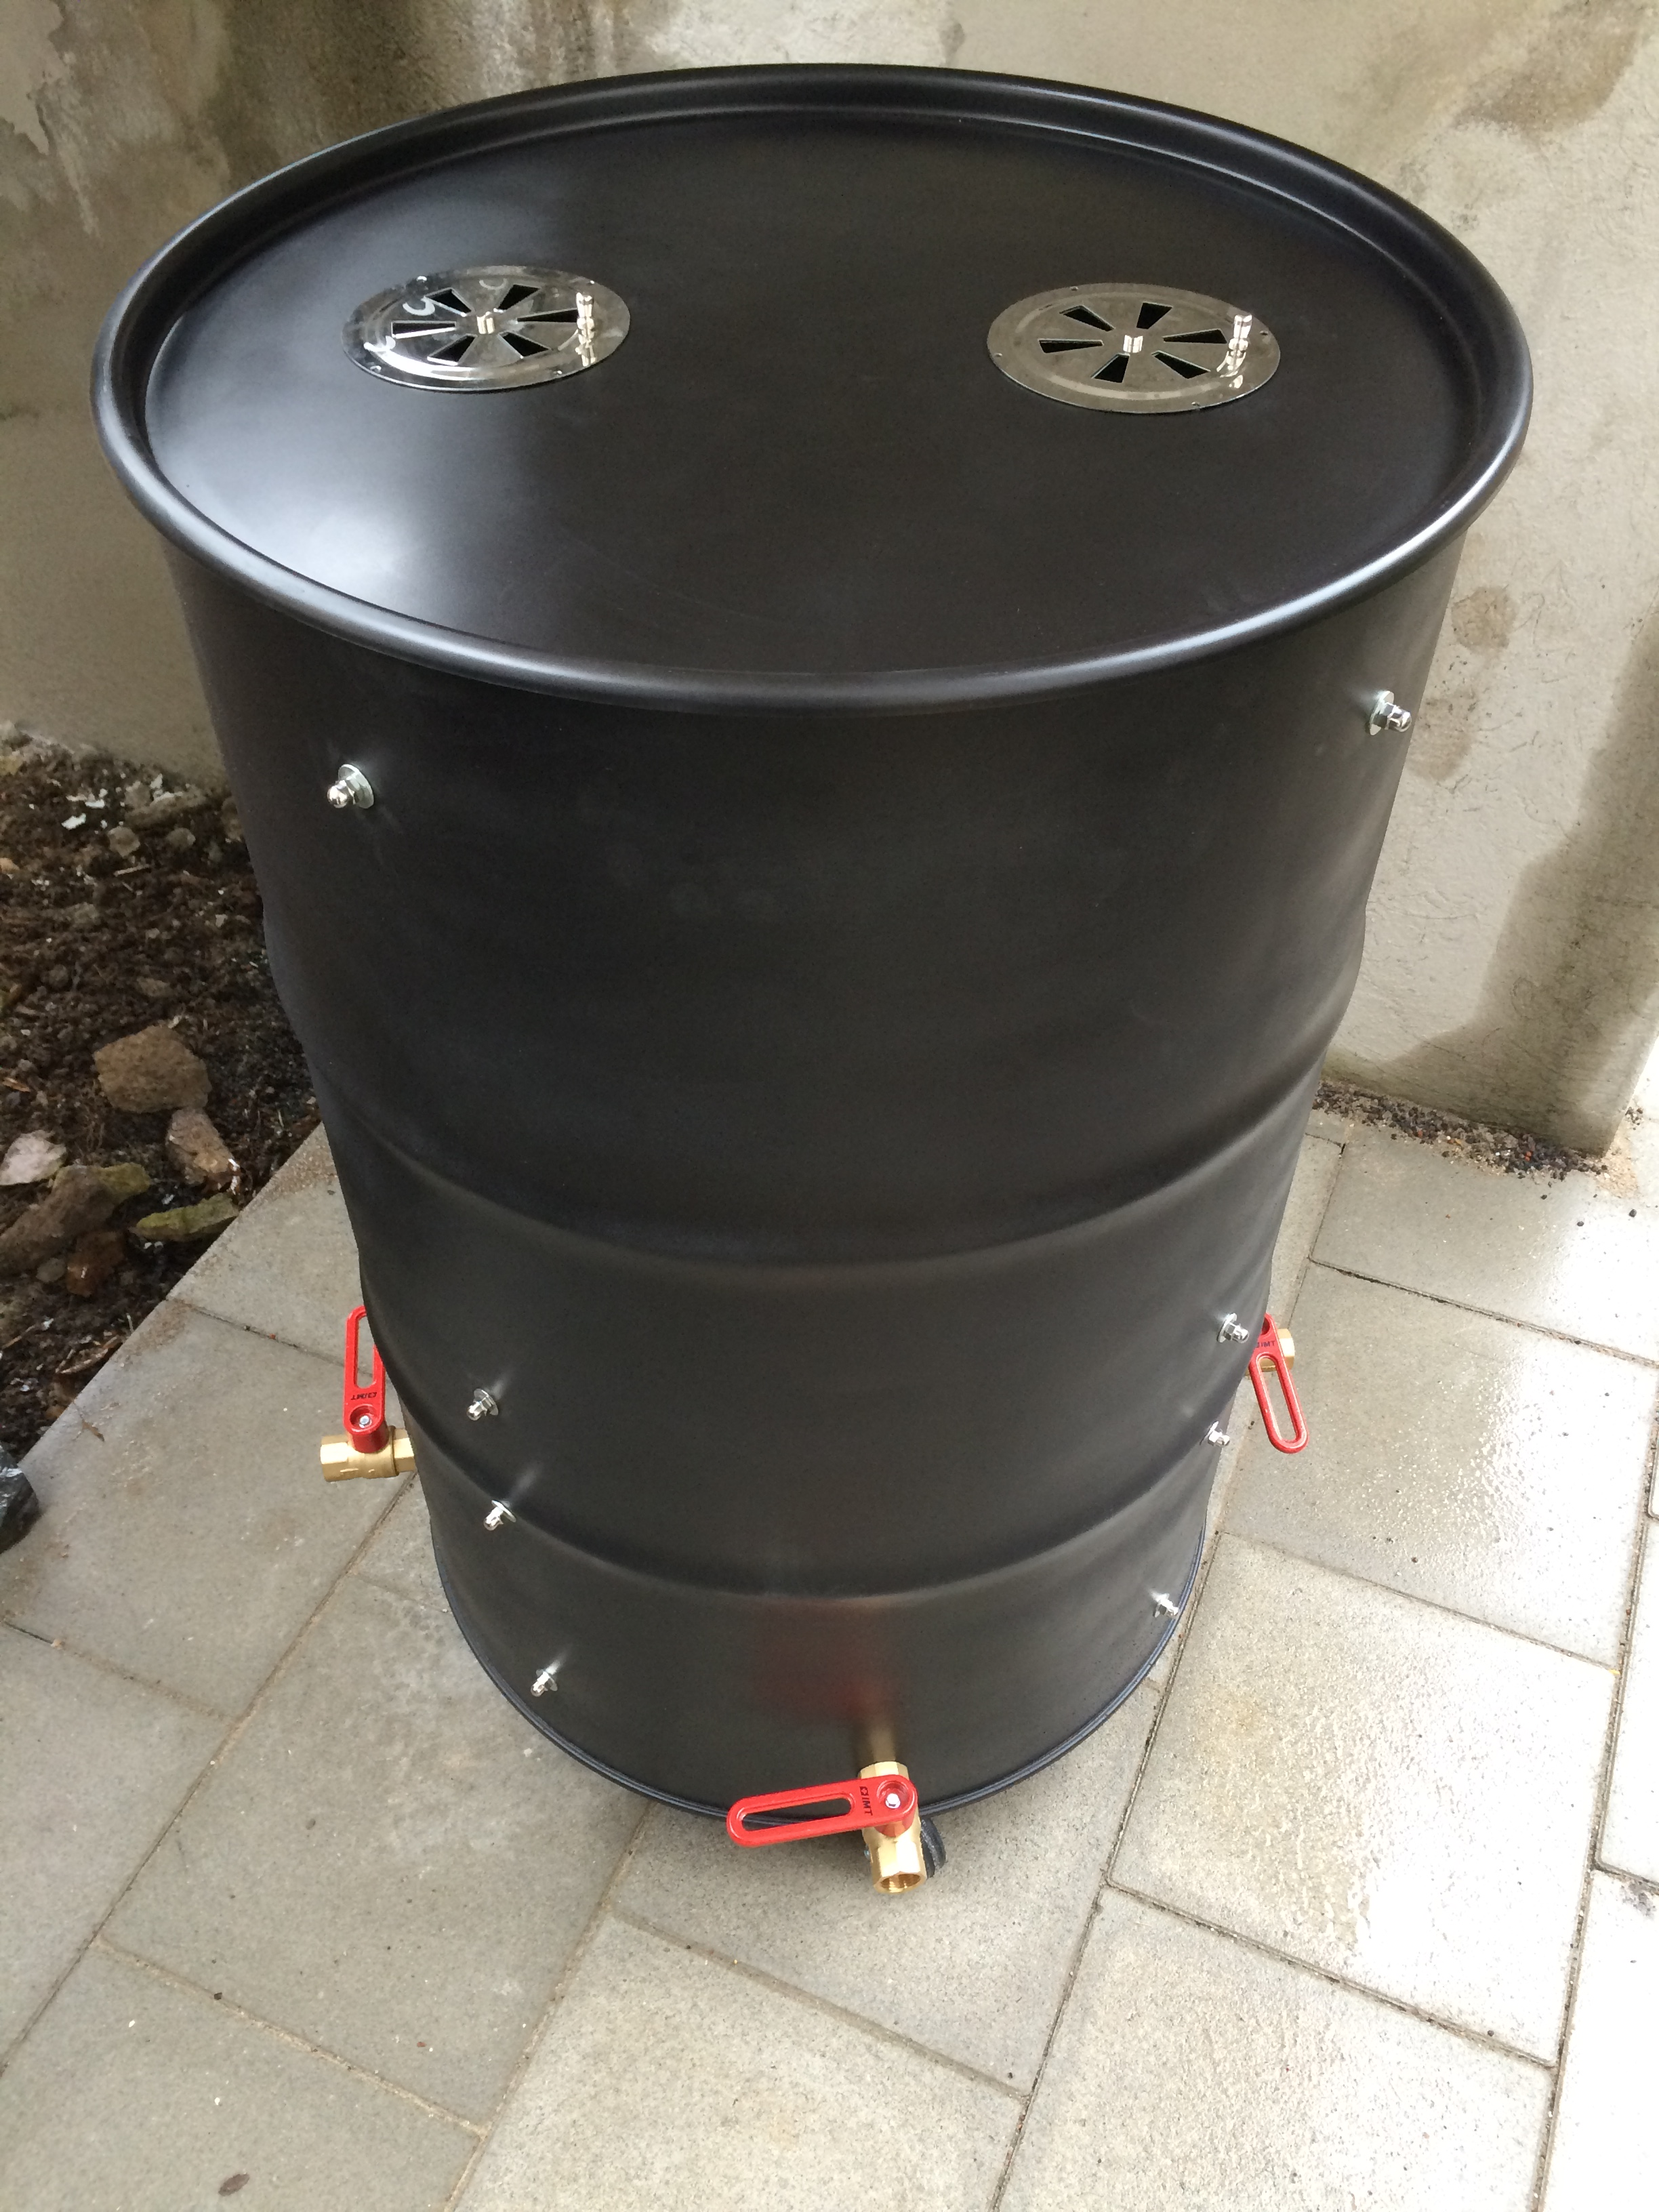 diy der eigenbau eines uds ugly drum smoker. Black Bedroom Furniture Sets. Home Design Ideas